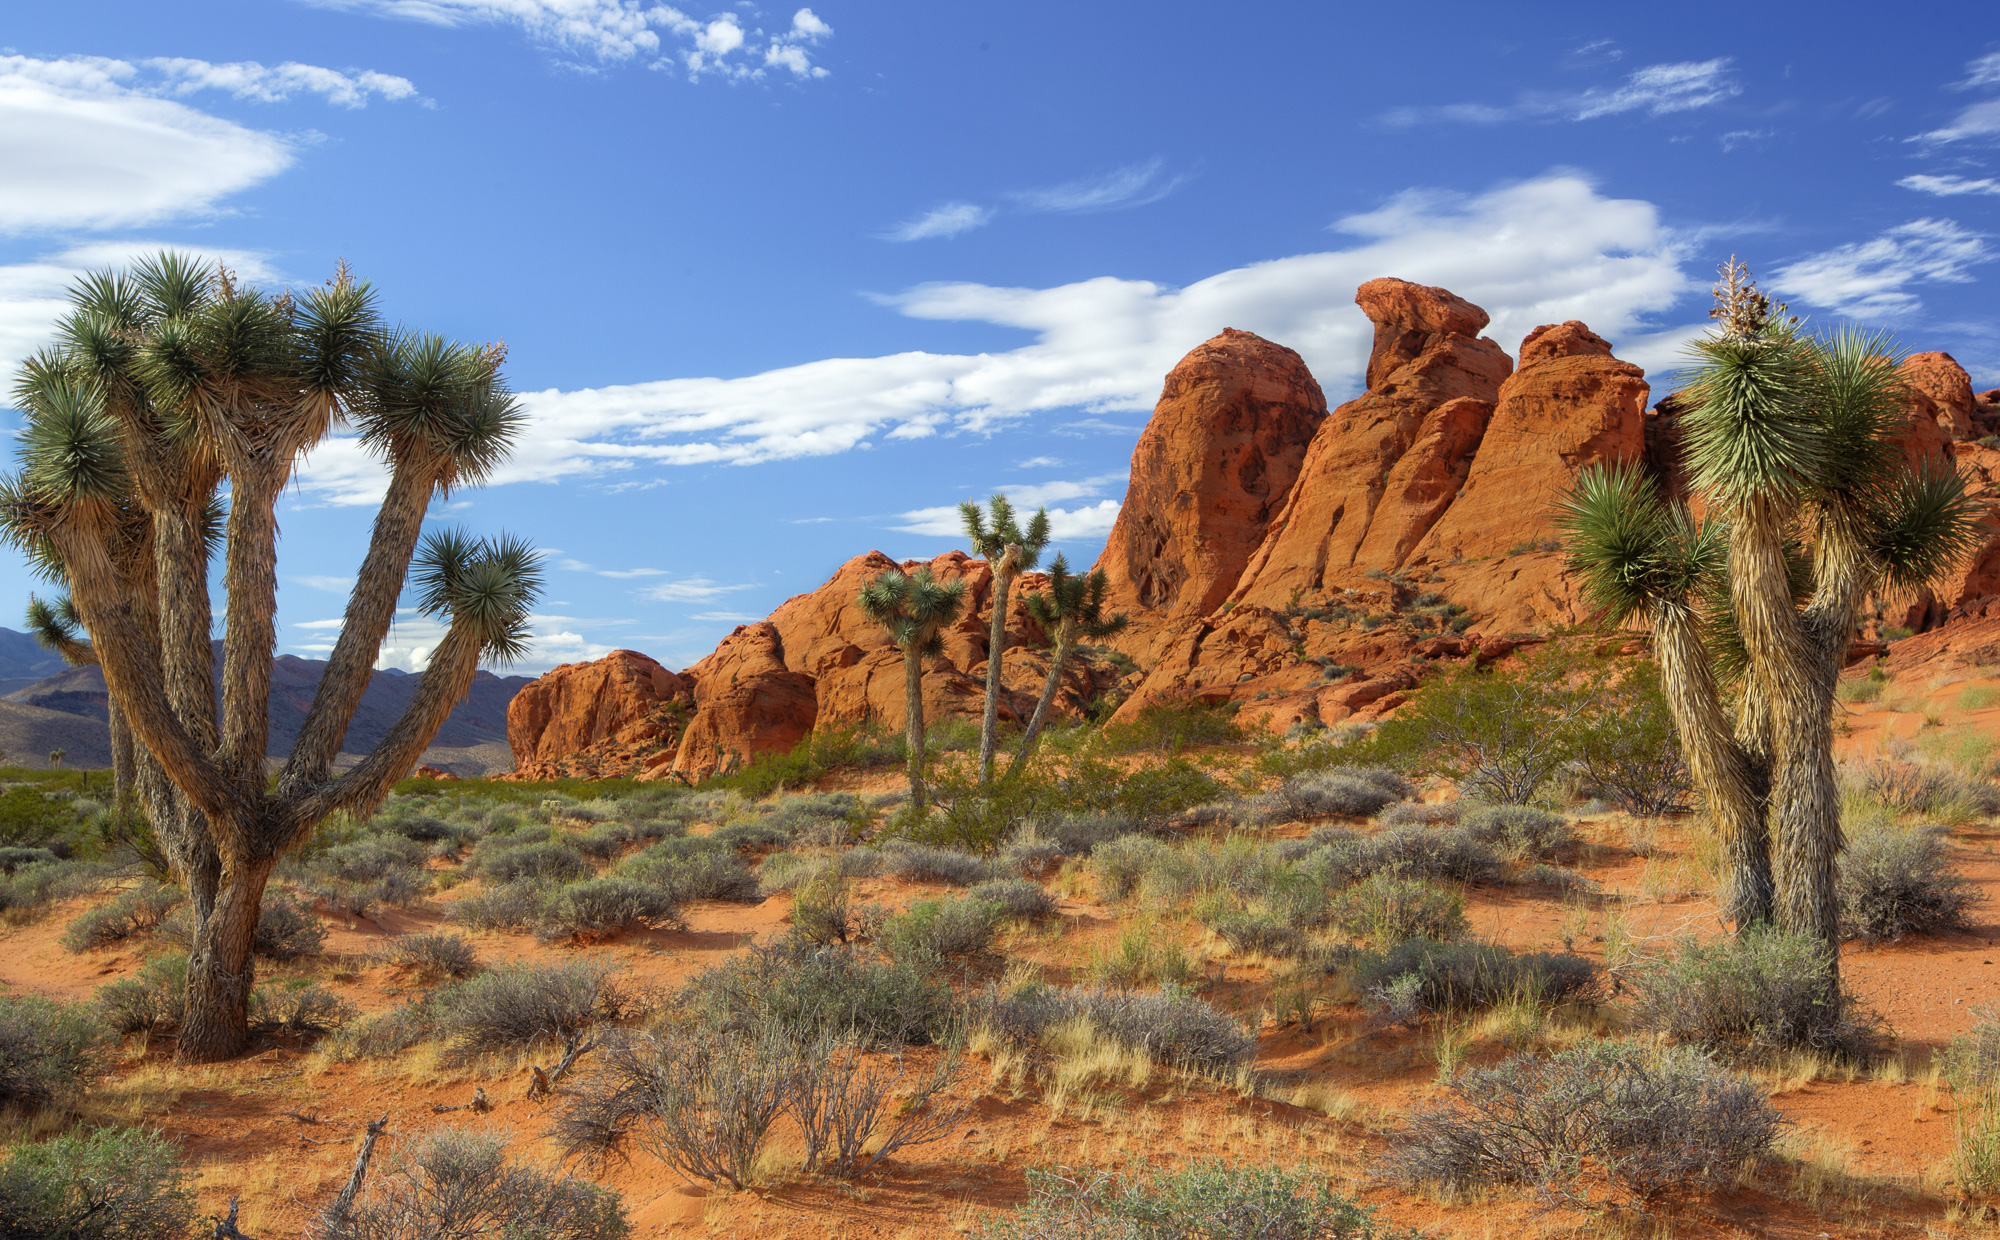 Joshua Trees at Gold Butte